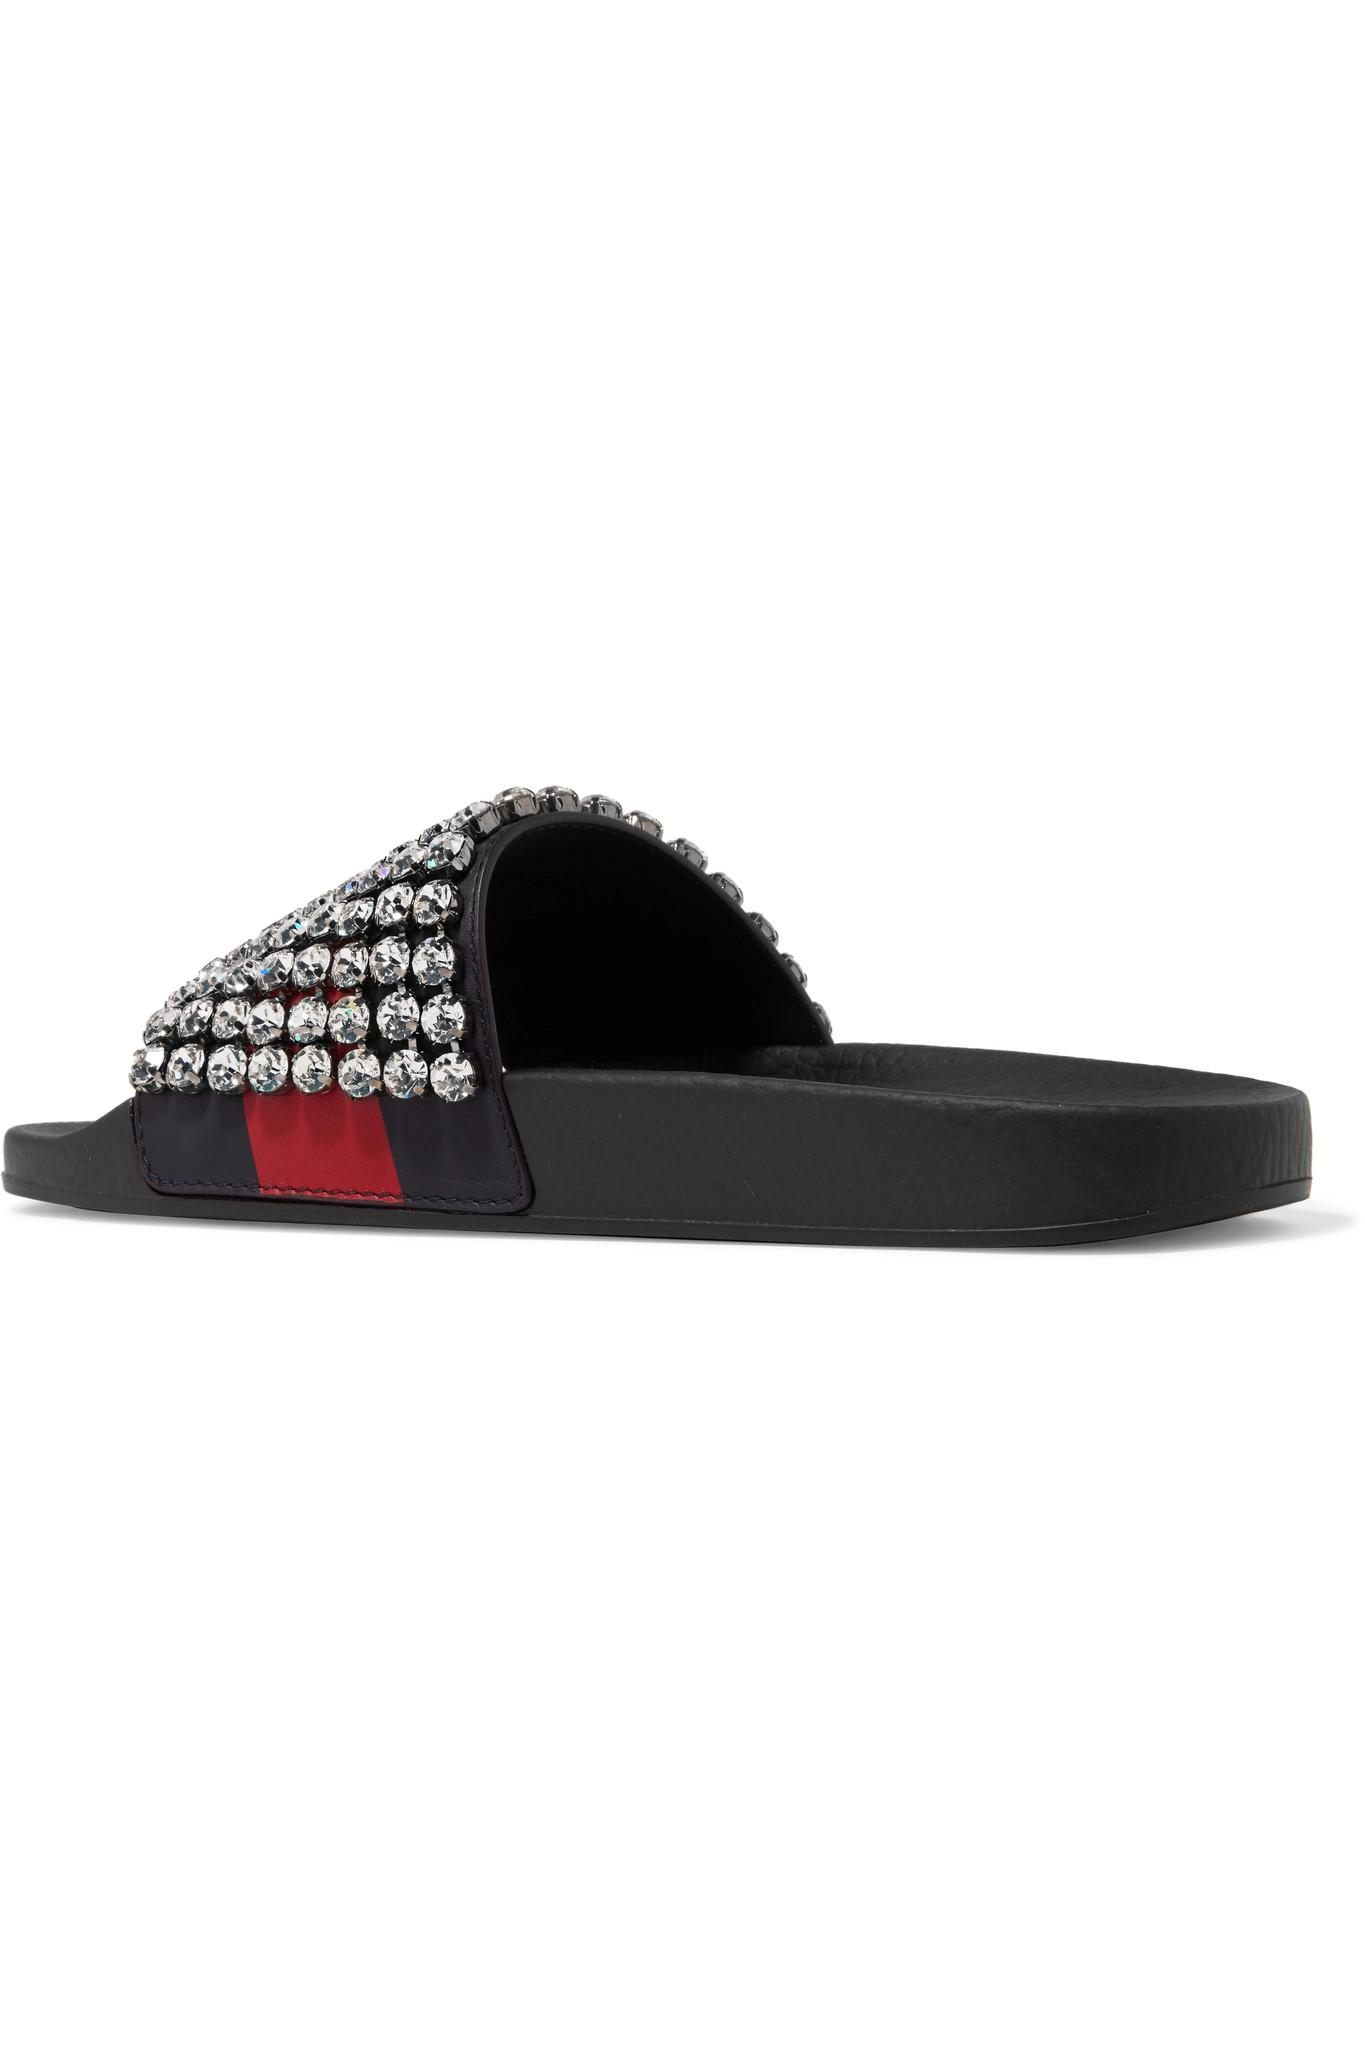 522490f643f Lyst - Gucci Crystal-embellished Leather And Rubber Slides in Black